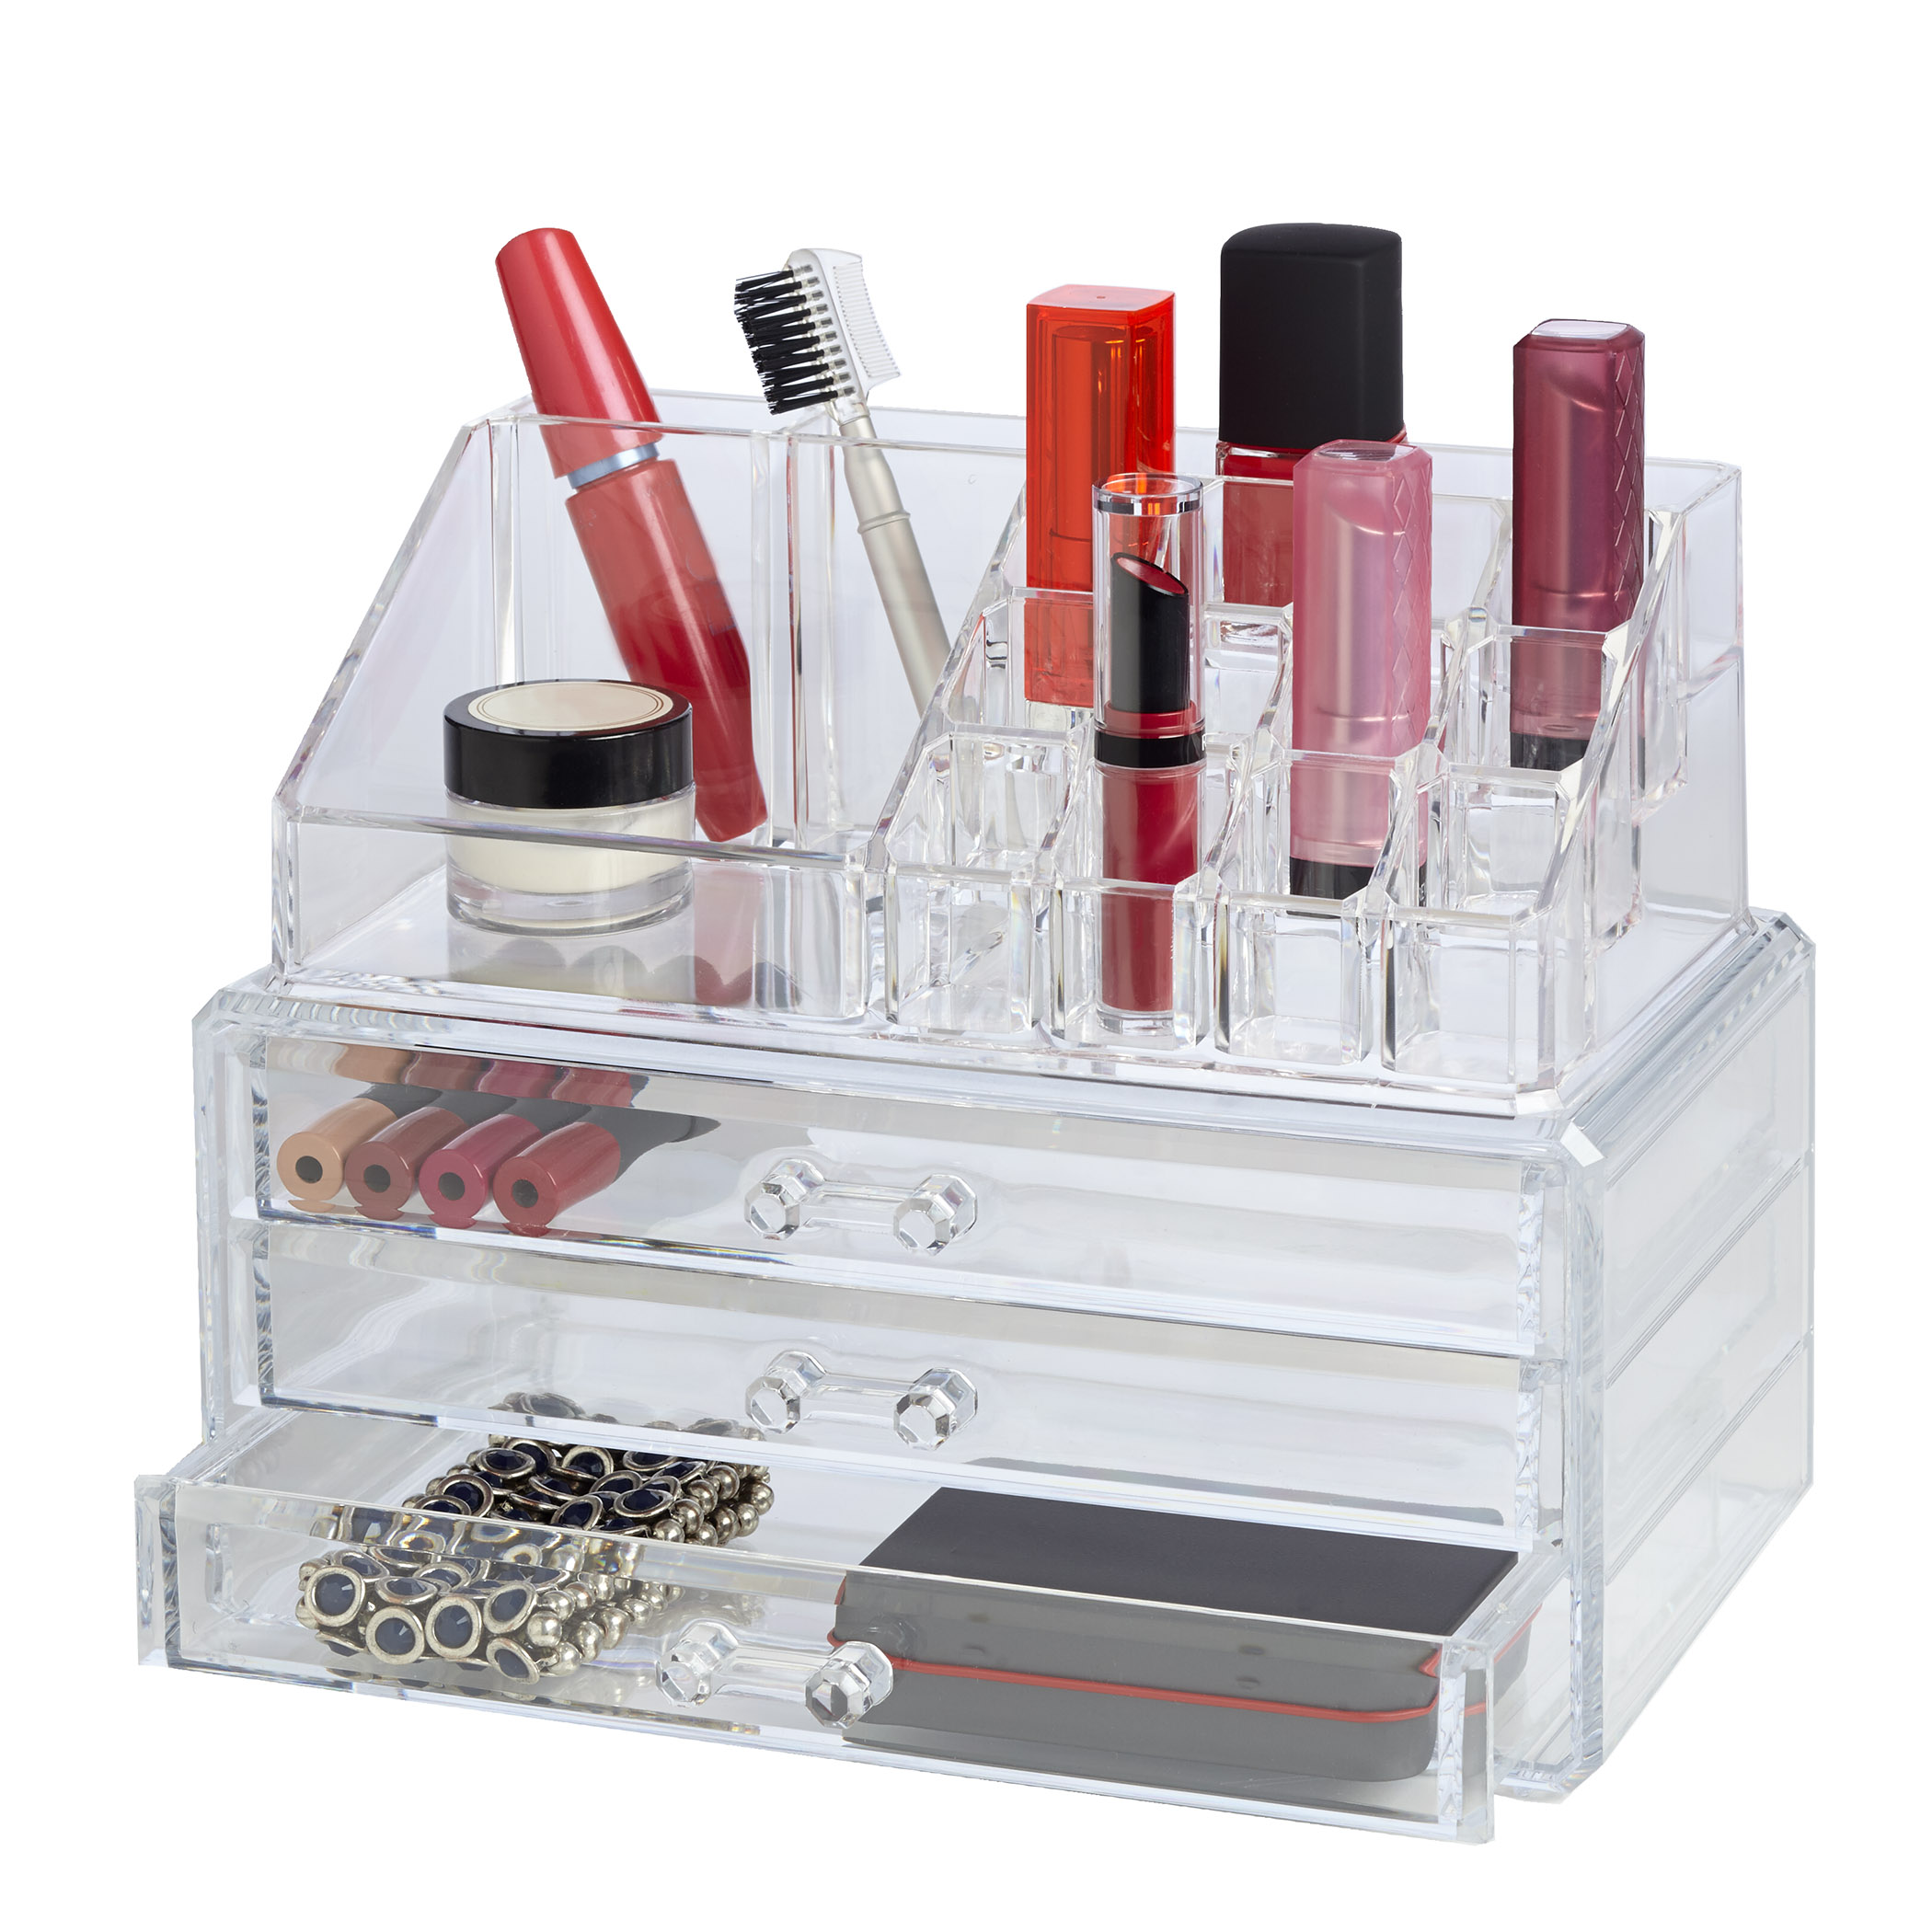 Richards Homewares Clearly Chic 19 Compartment Cosmetic Organizer with 3 Drawer